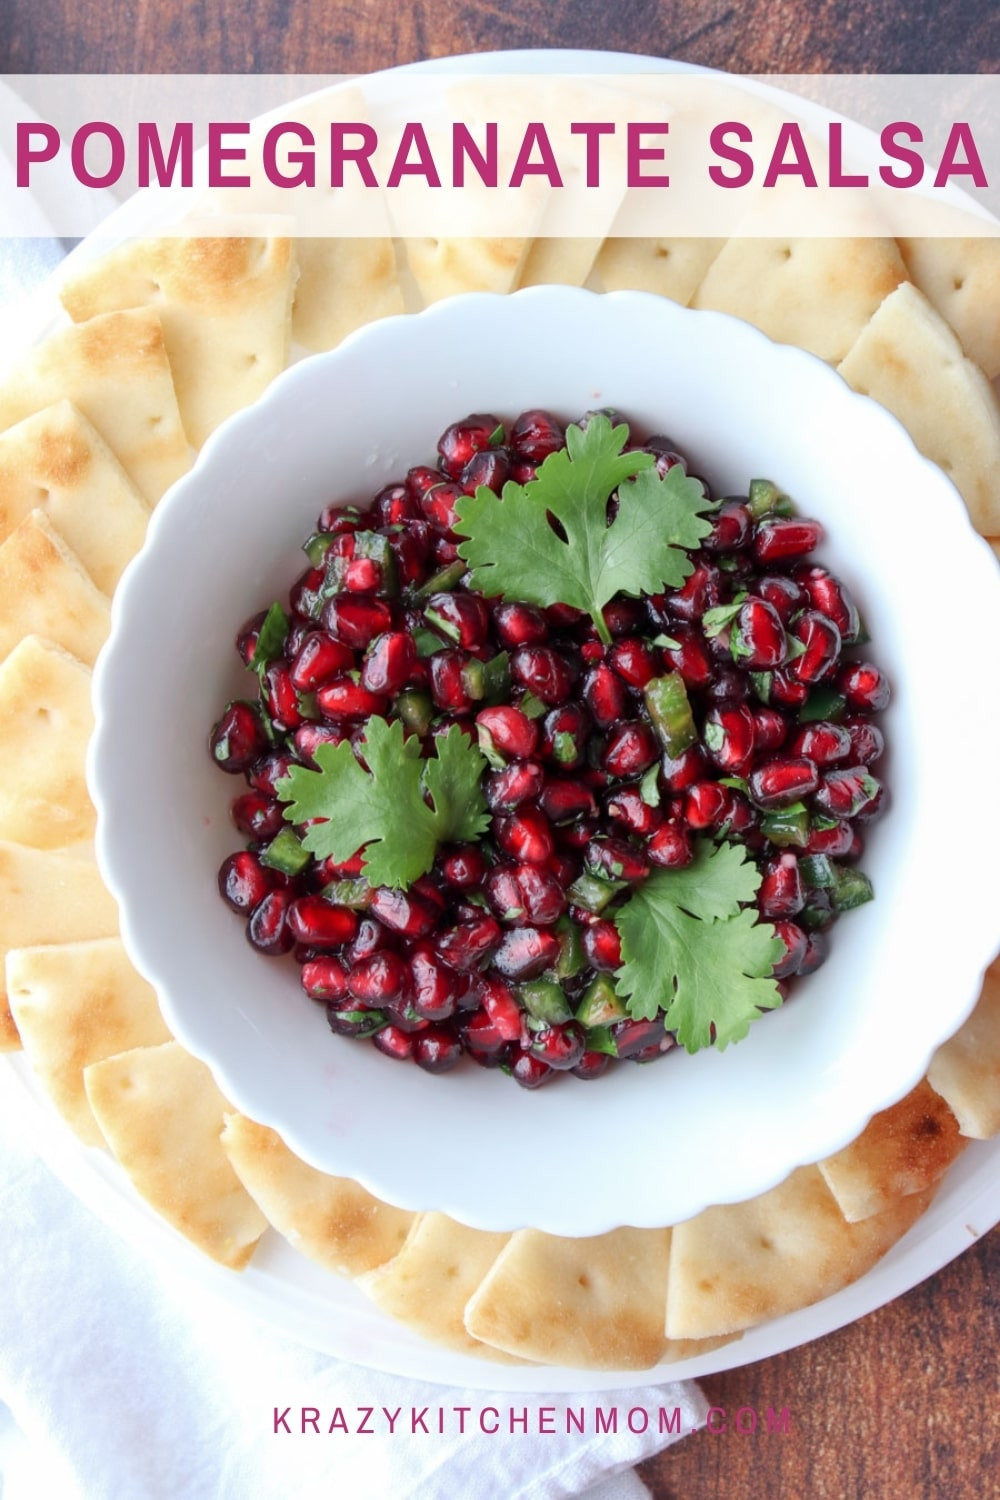 Ring in the New Year with a fresh delicious winter salsa filled with little red jewels of bursting flavor. via @krazykitchenmom